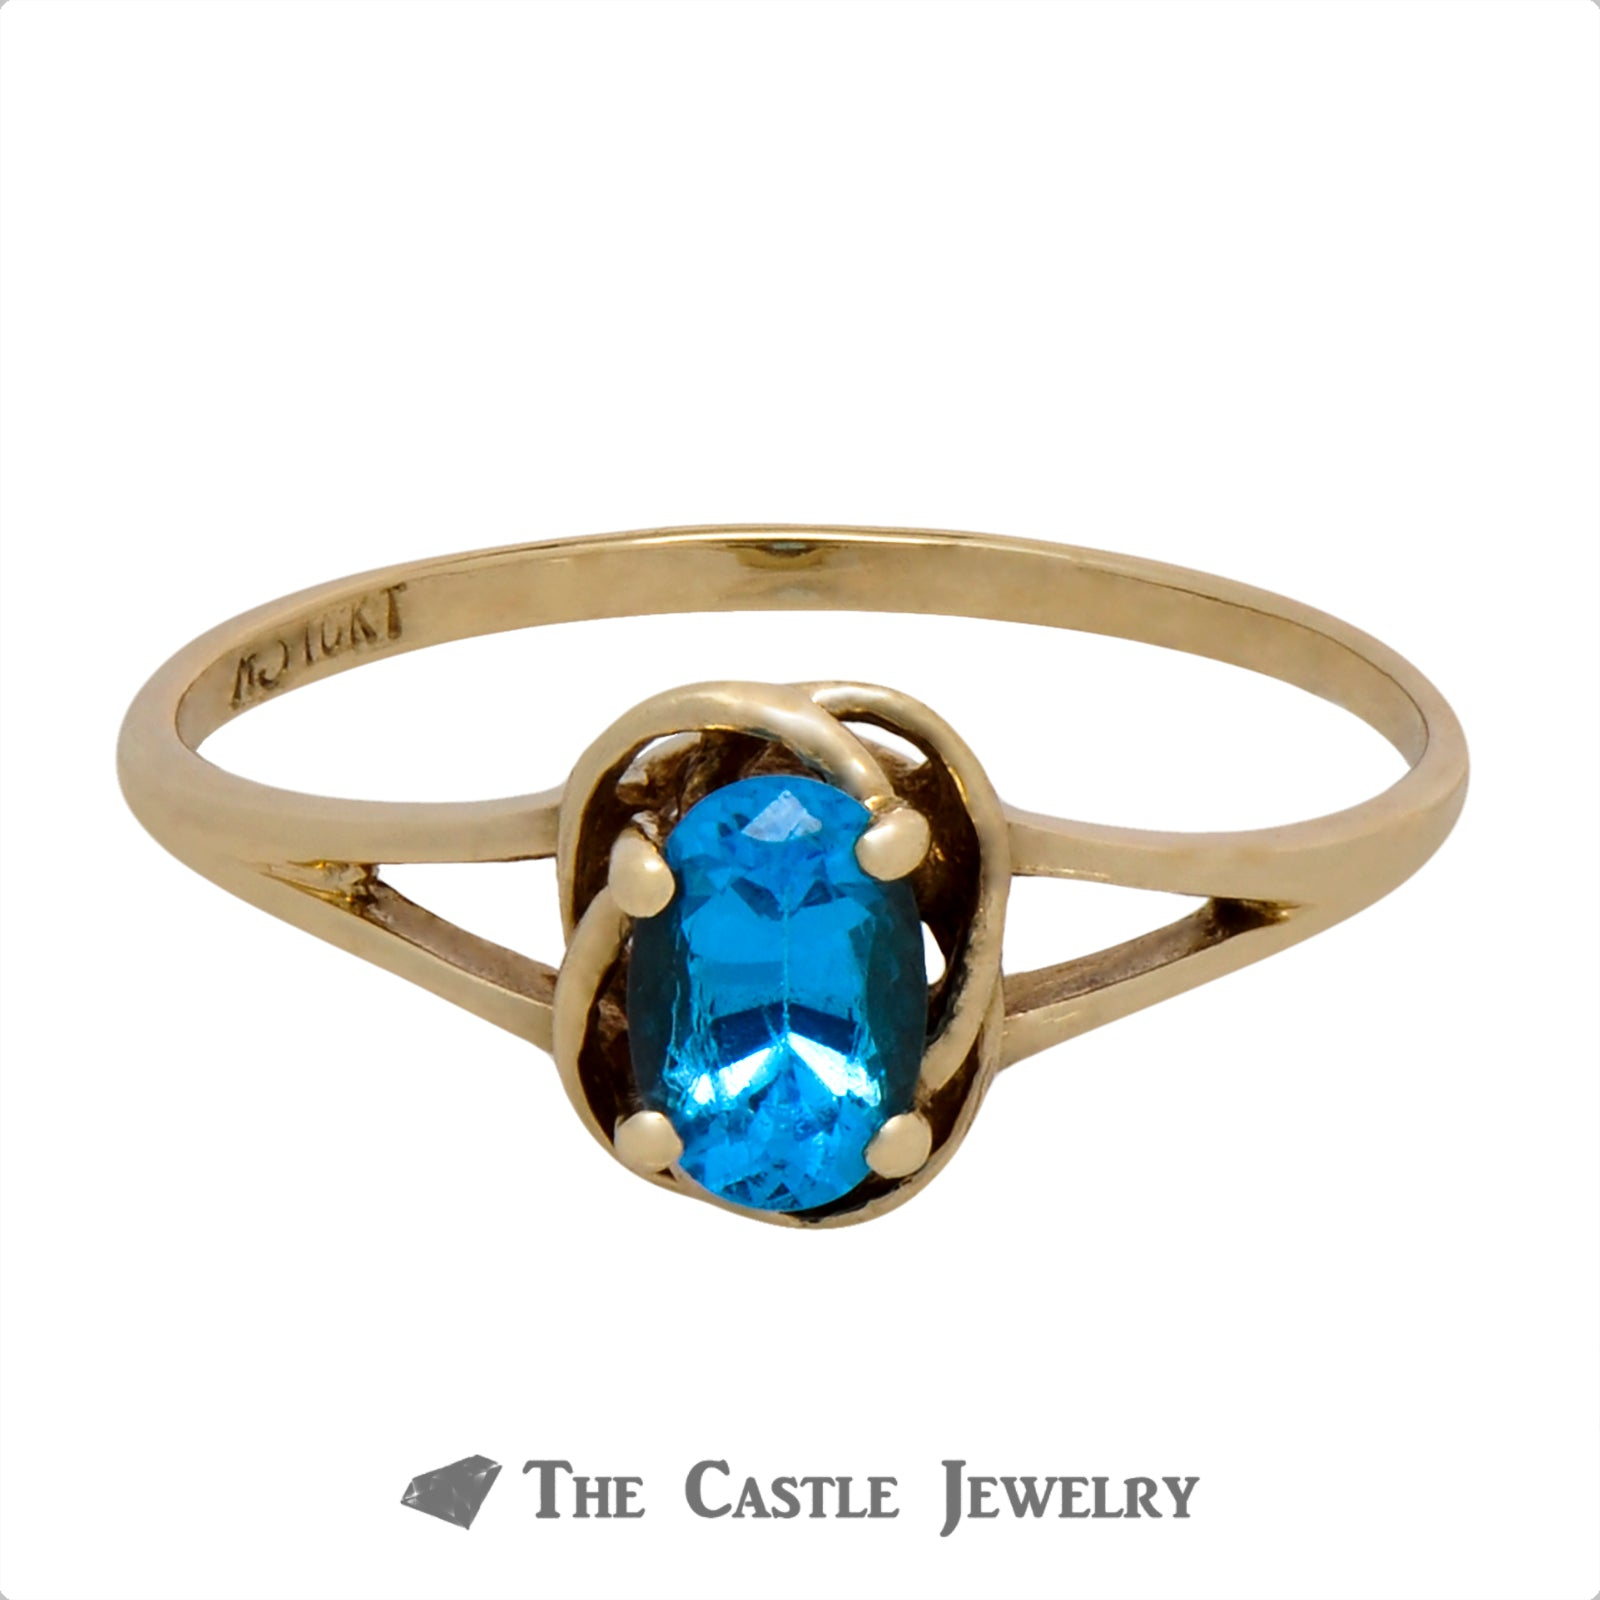 Oval Cut Blue Topaz Ring with Knot Designed Split Shank Mounting